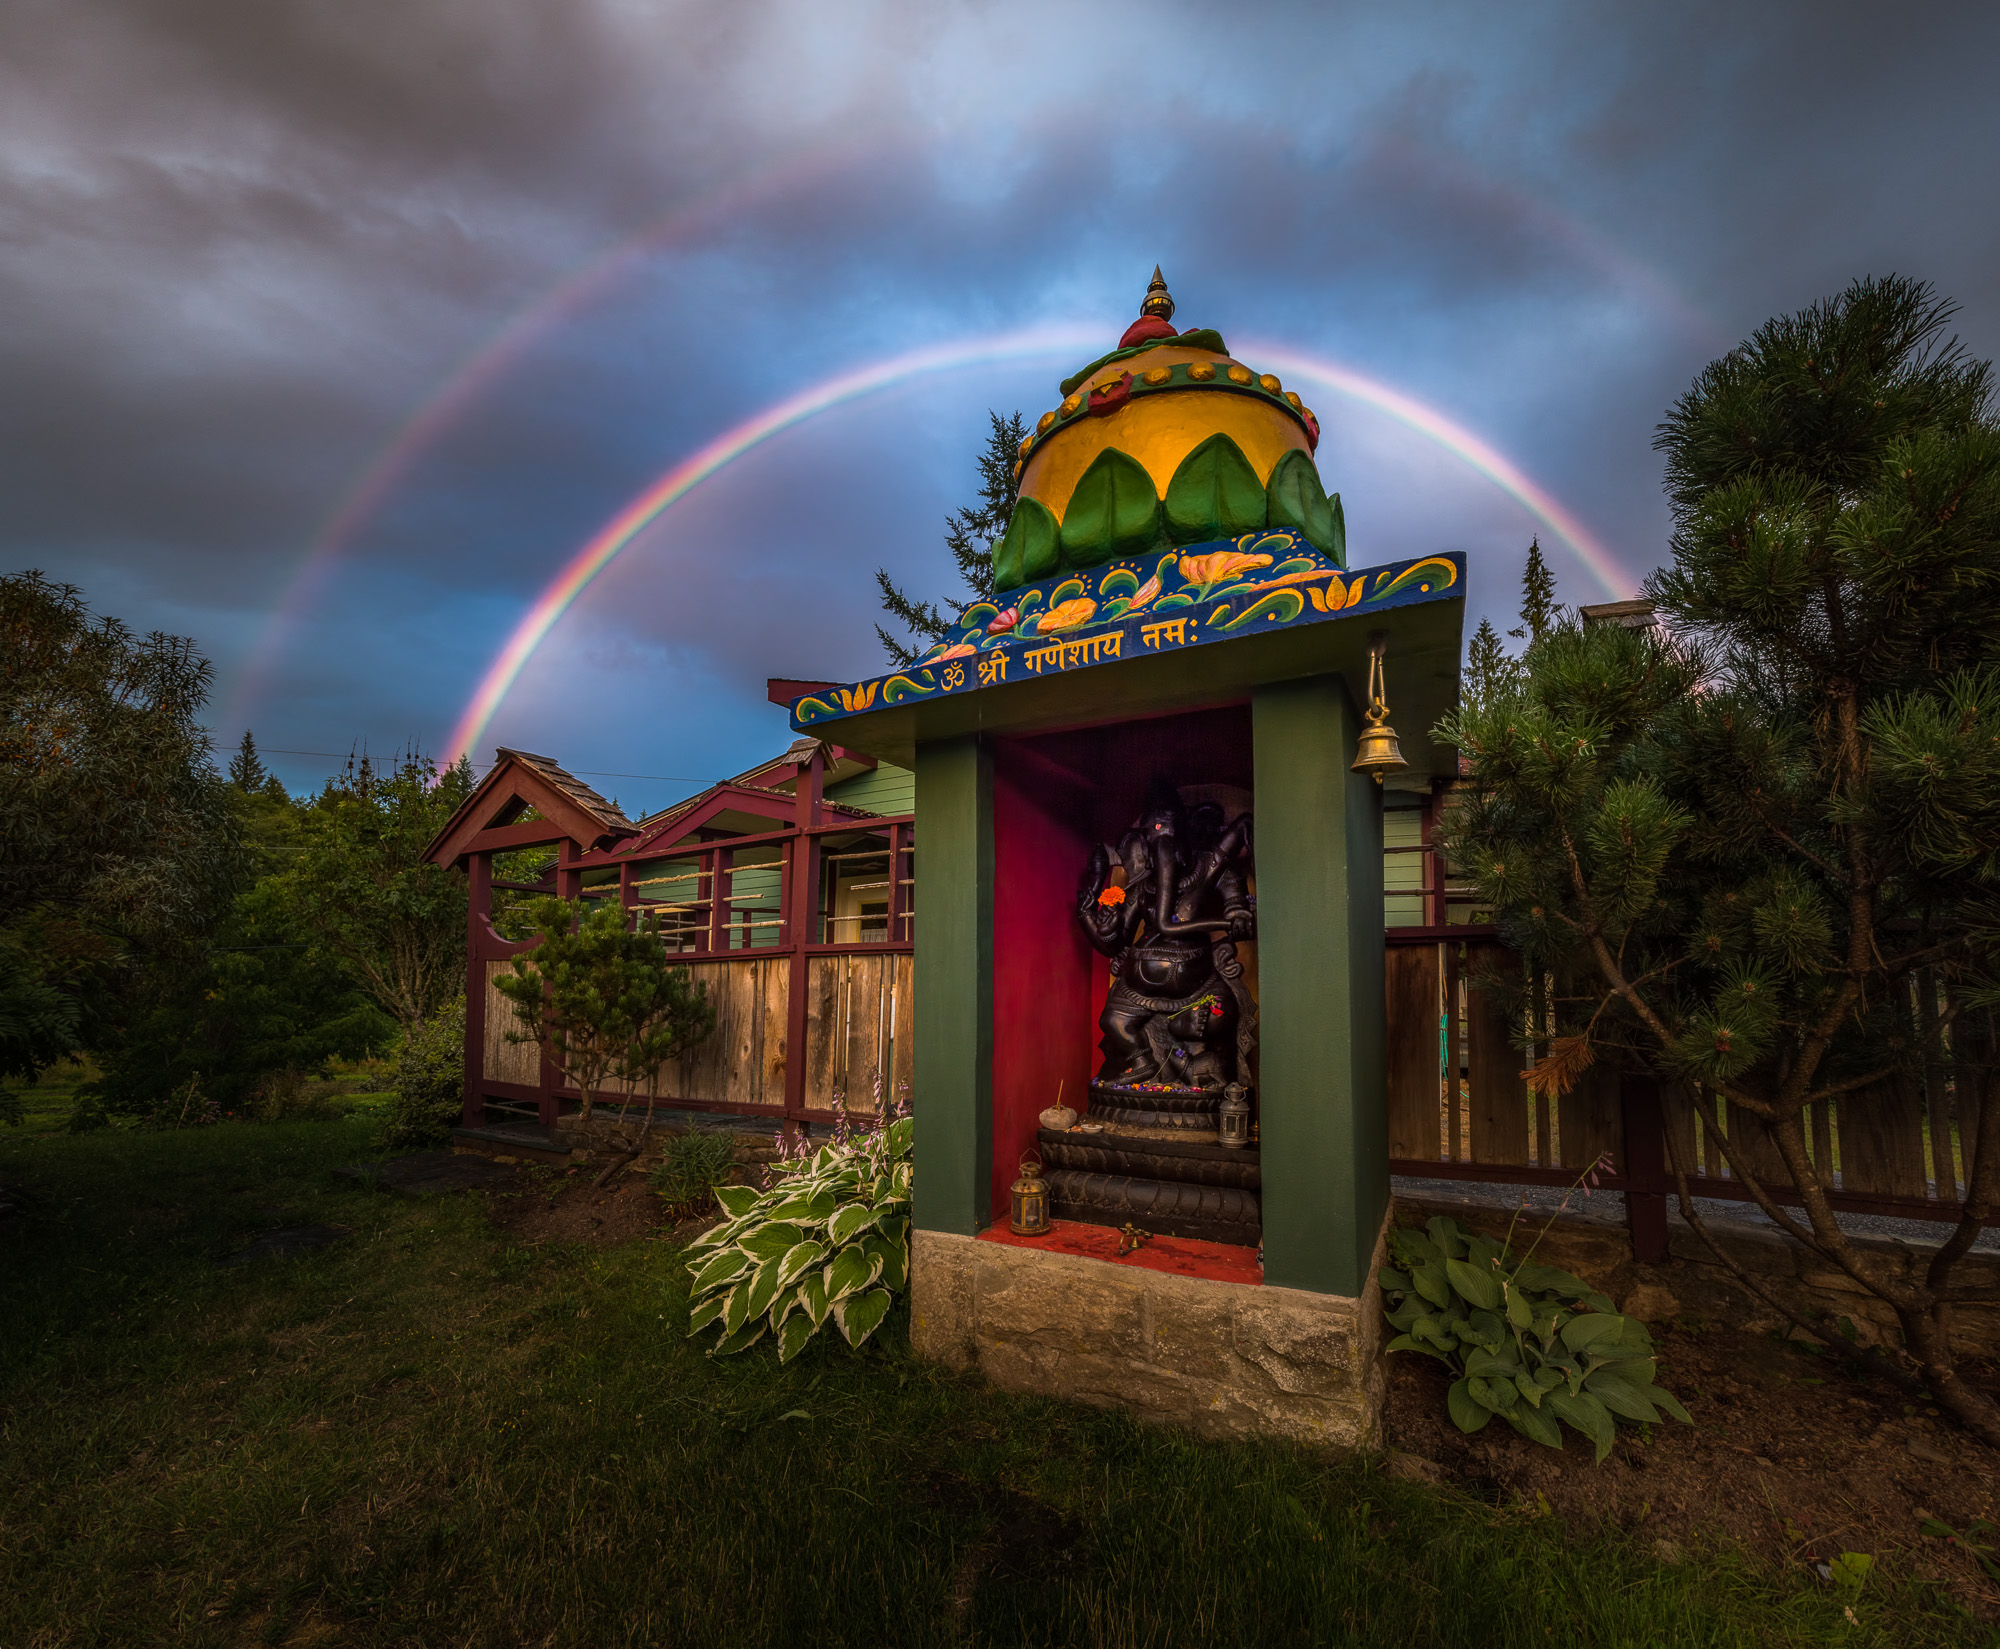 Ganesh with rainbows (photo by Gawain Jones)